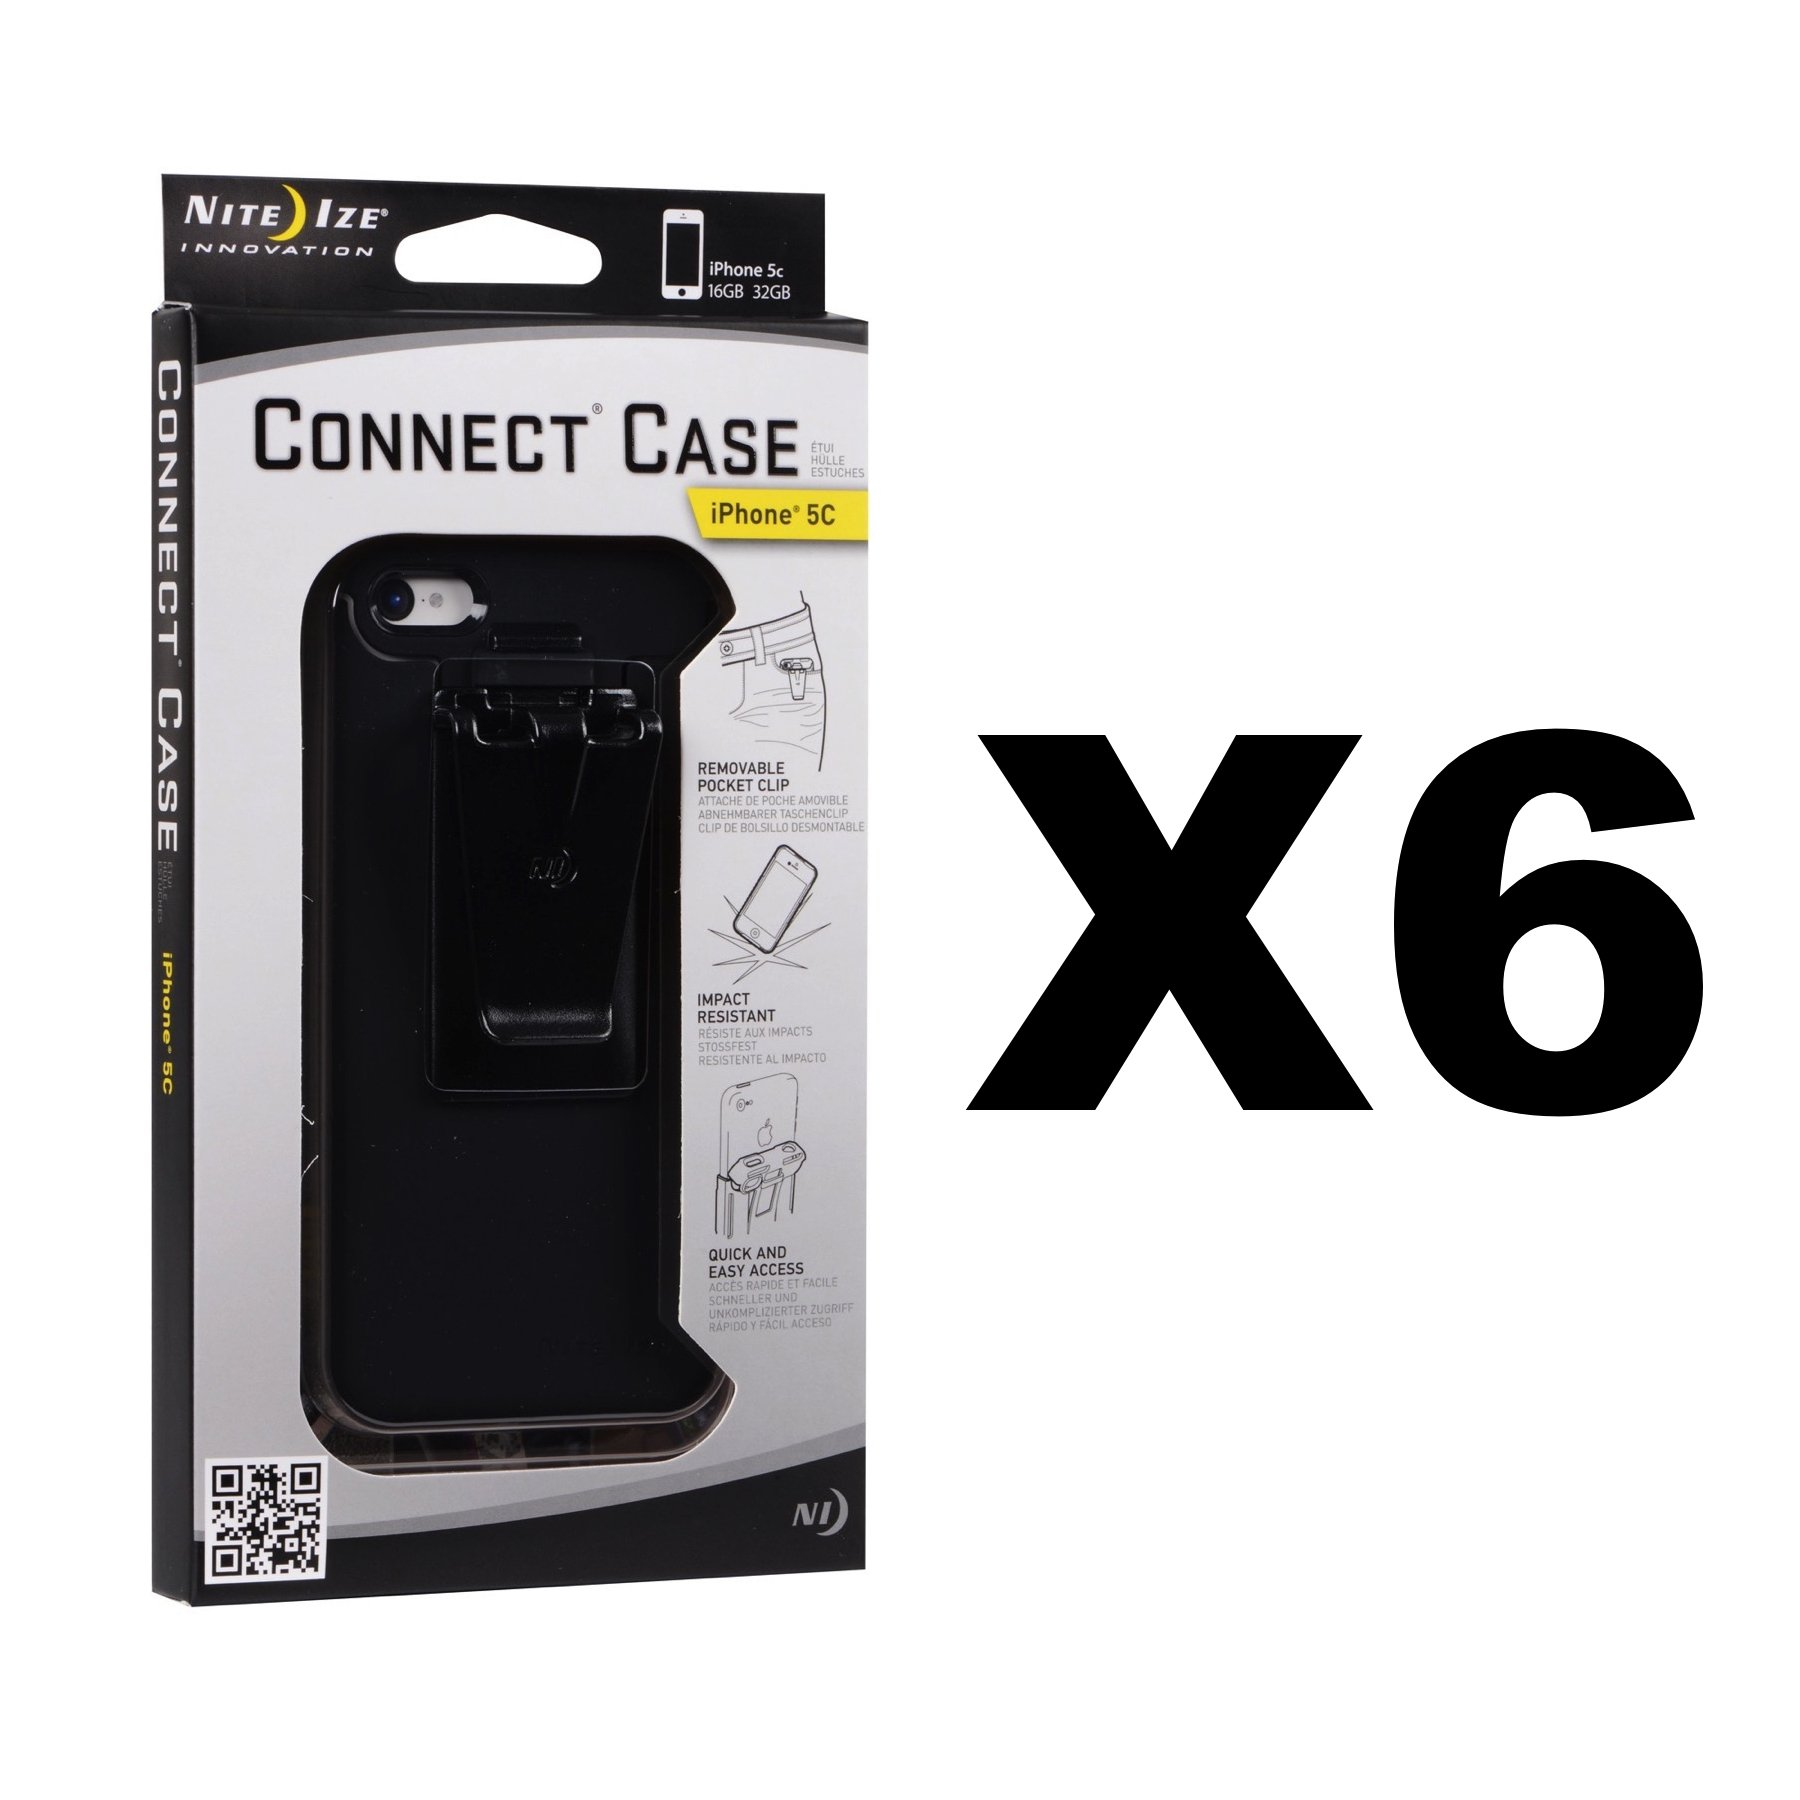 Nite Ize Connect Case for iPhone 5C Black with Belt Clip Shatterproof (6-Pack) by Nite Ize